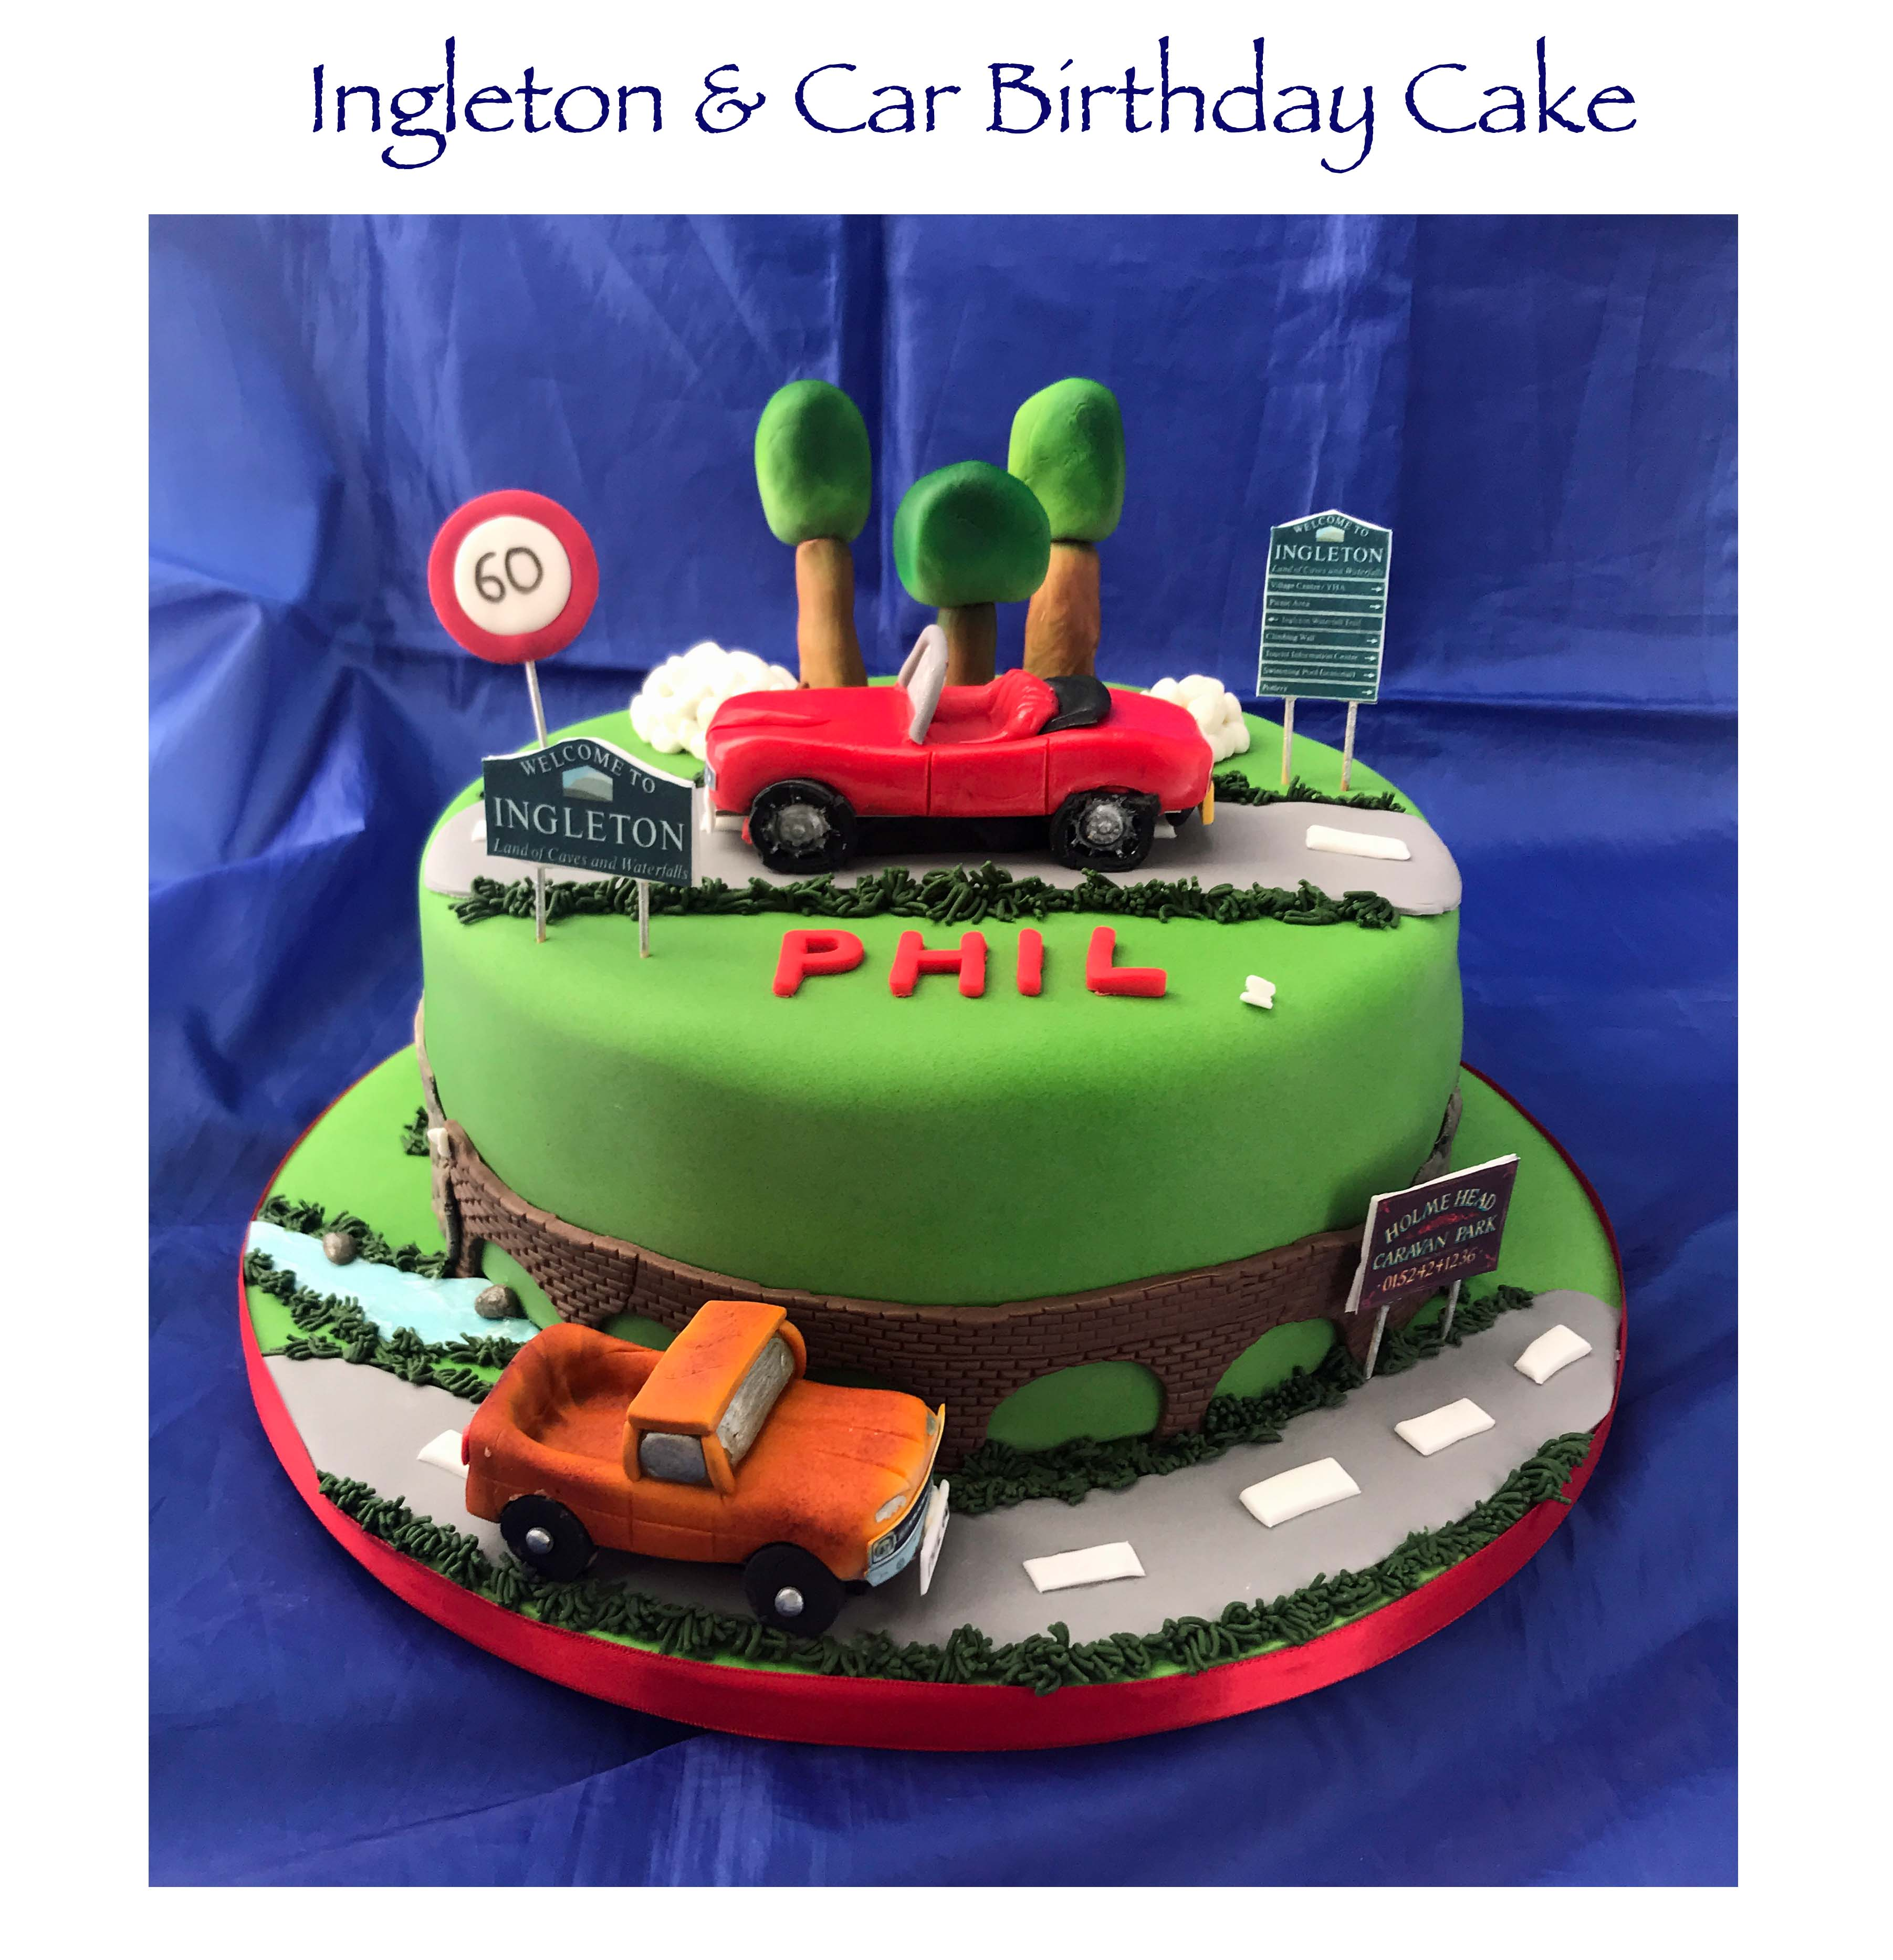 Ingleton and Car Birthday Cake